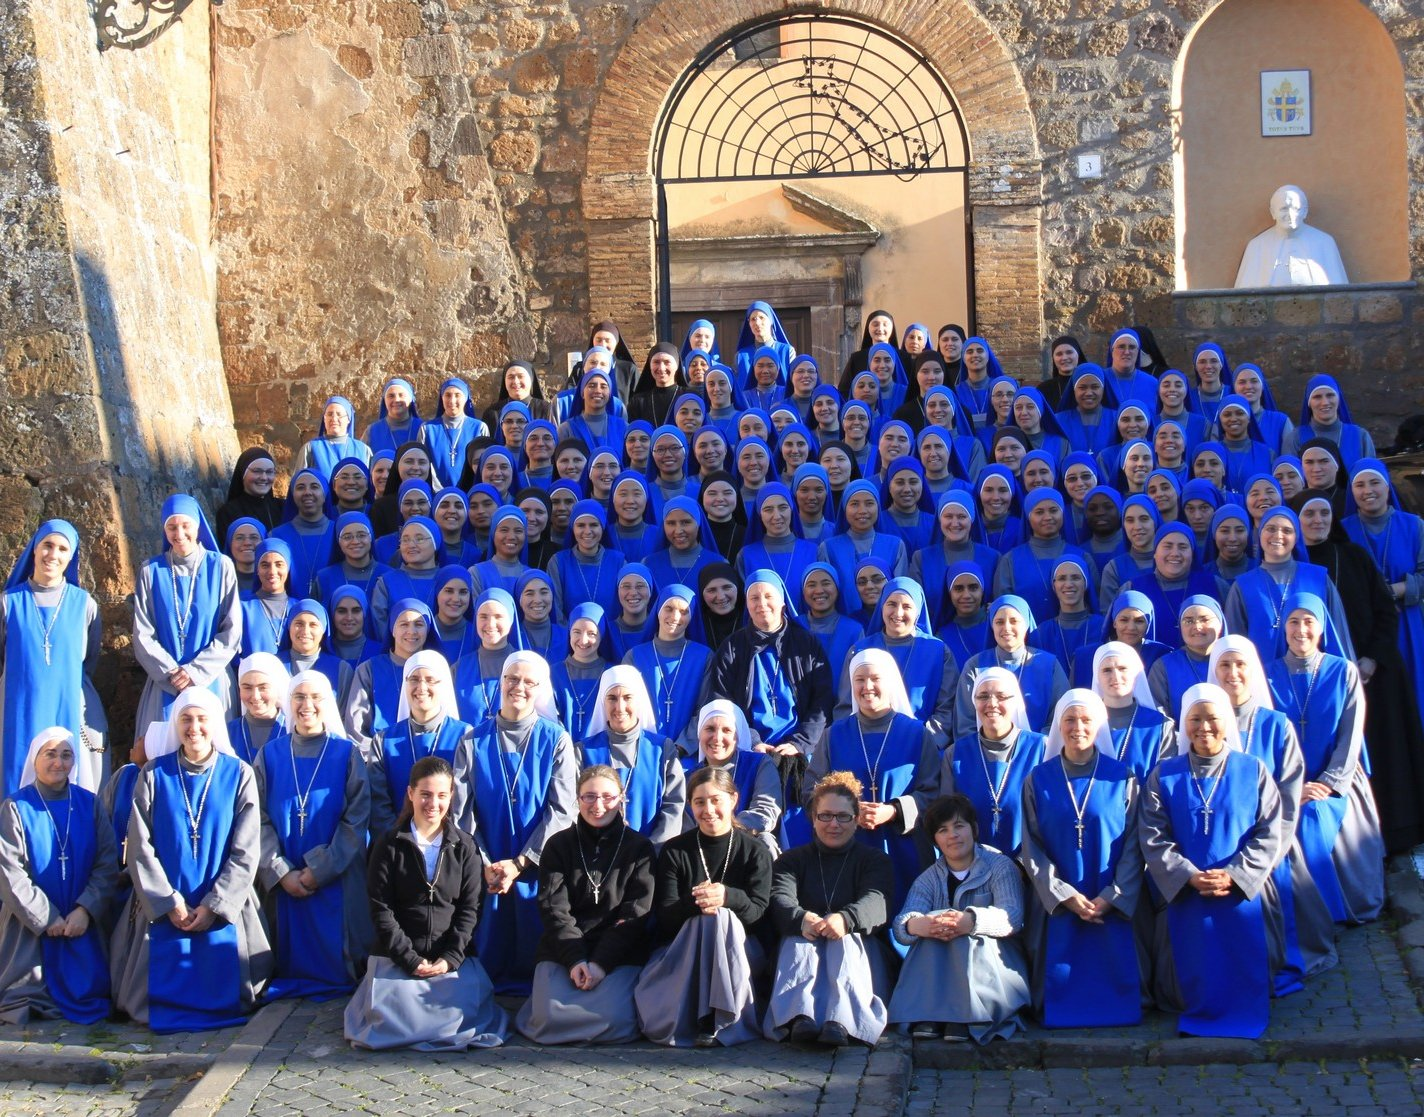 Servants of the Lord and the Virgin of Matará (SSVM)